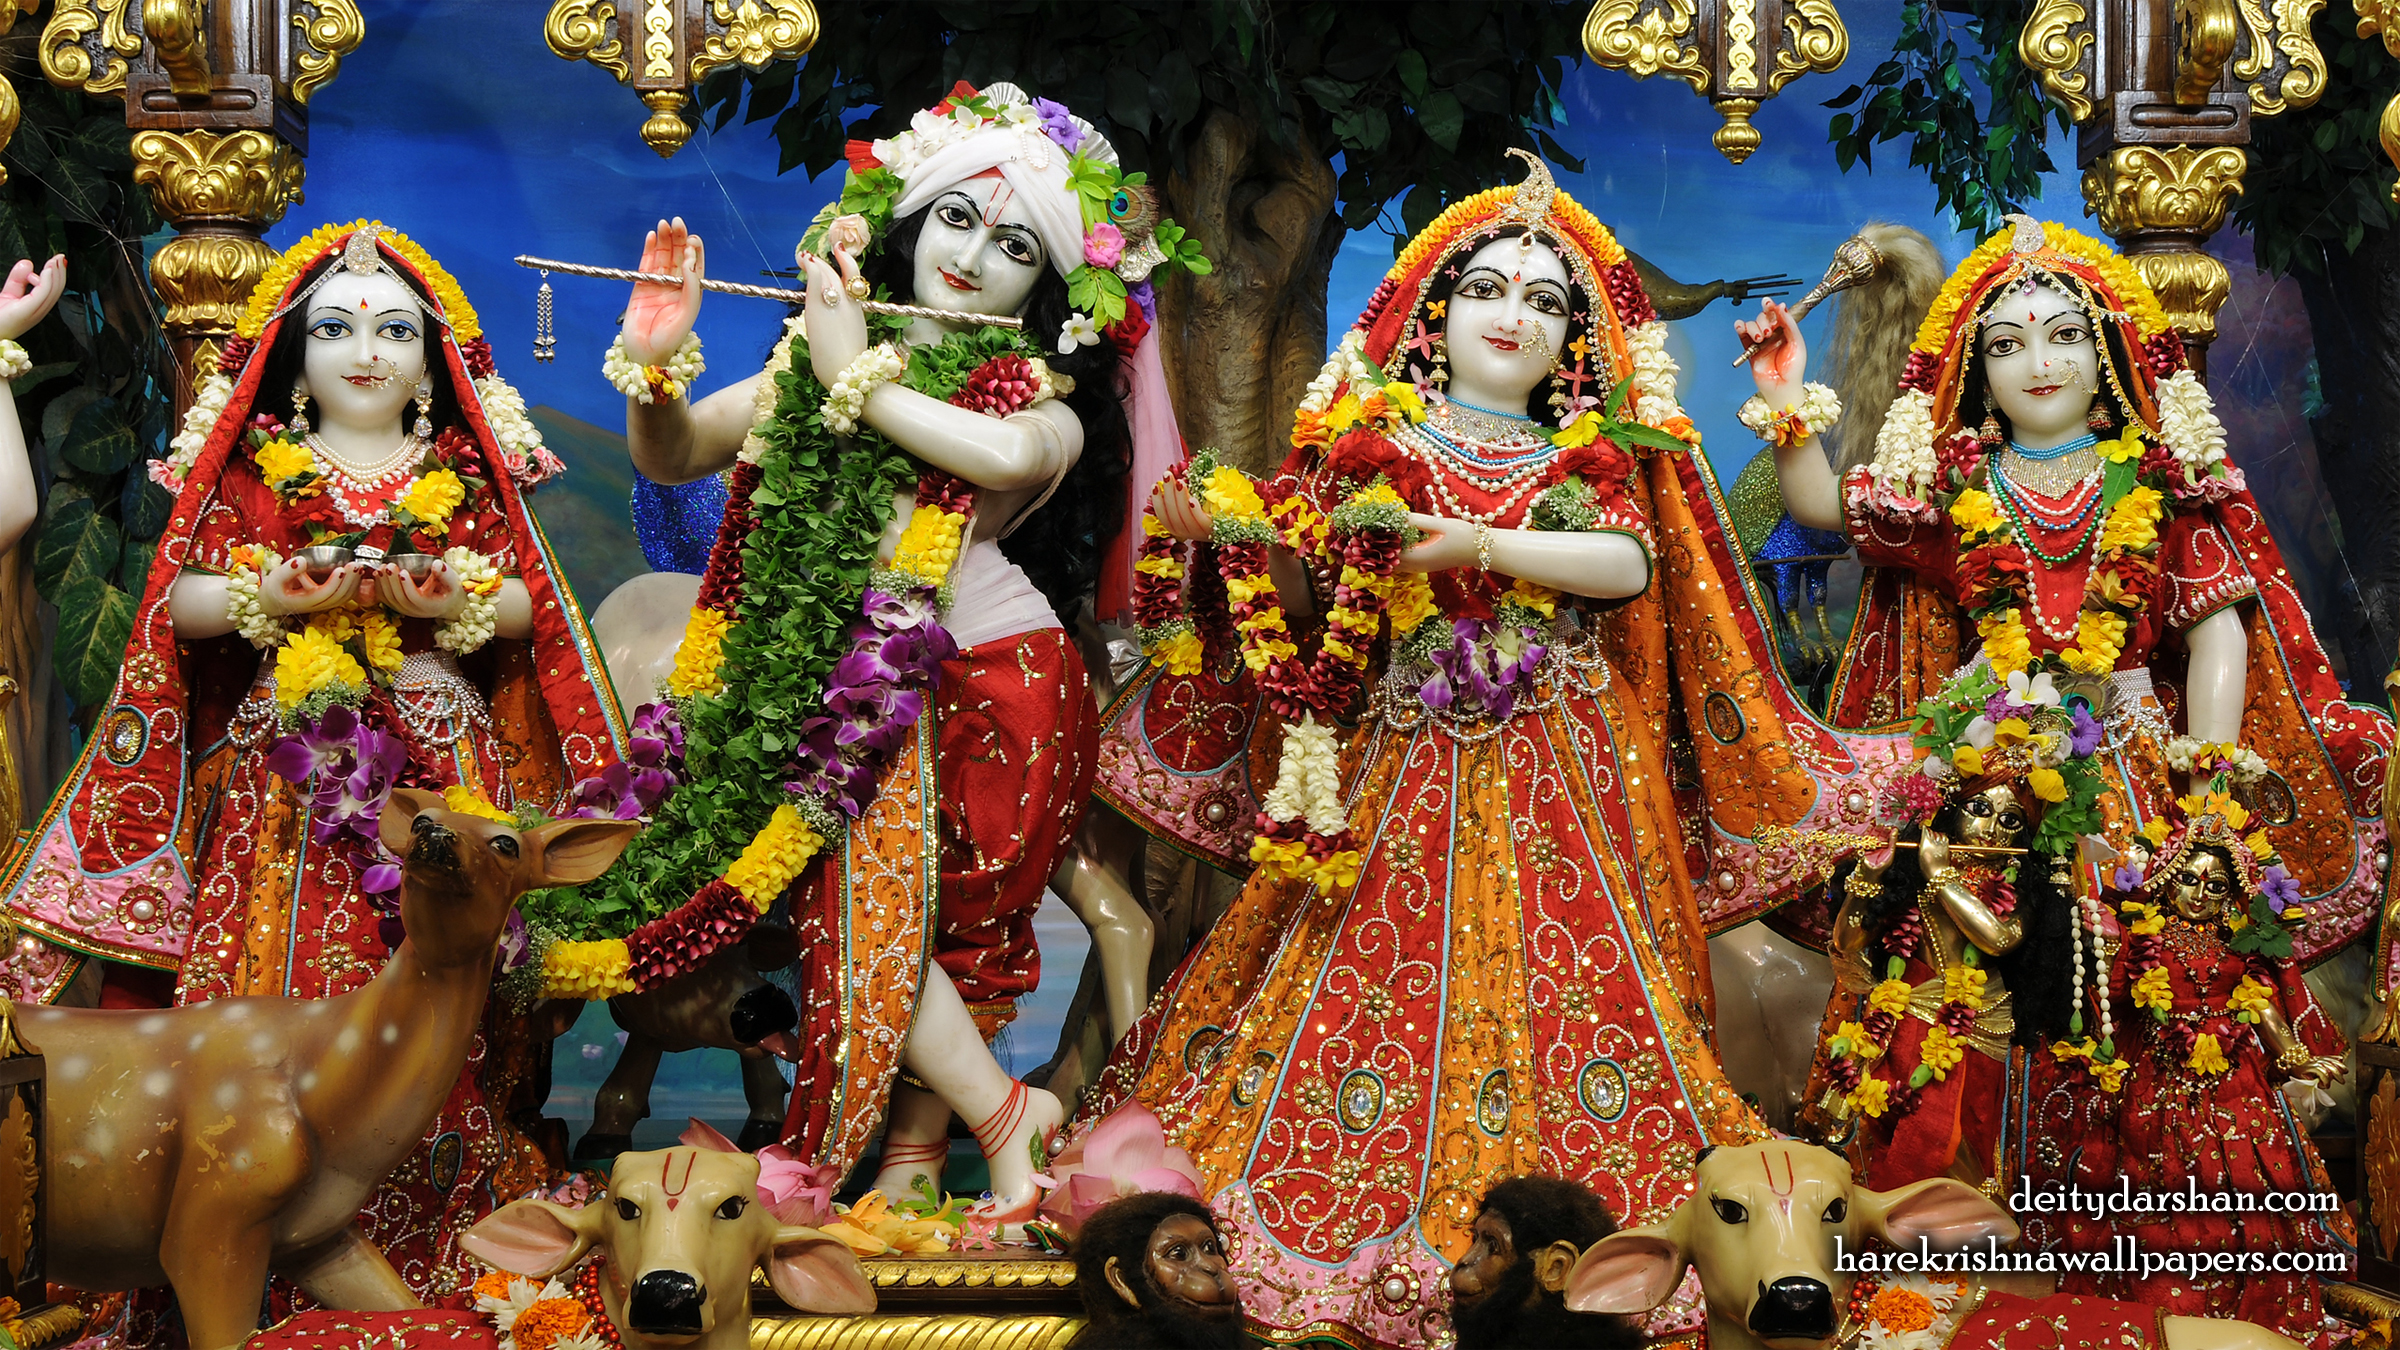 Sri Sri Radha Gopinath Lalita Vishakha Wallpaper (061) Size 2400x1350 Download